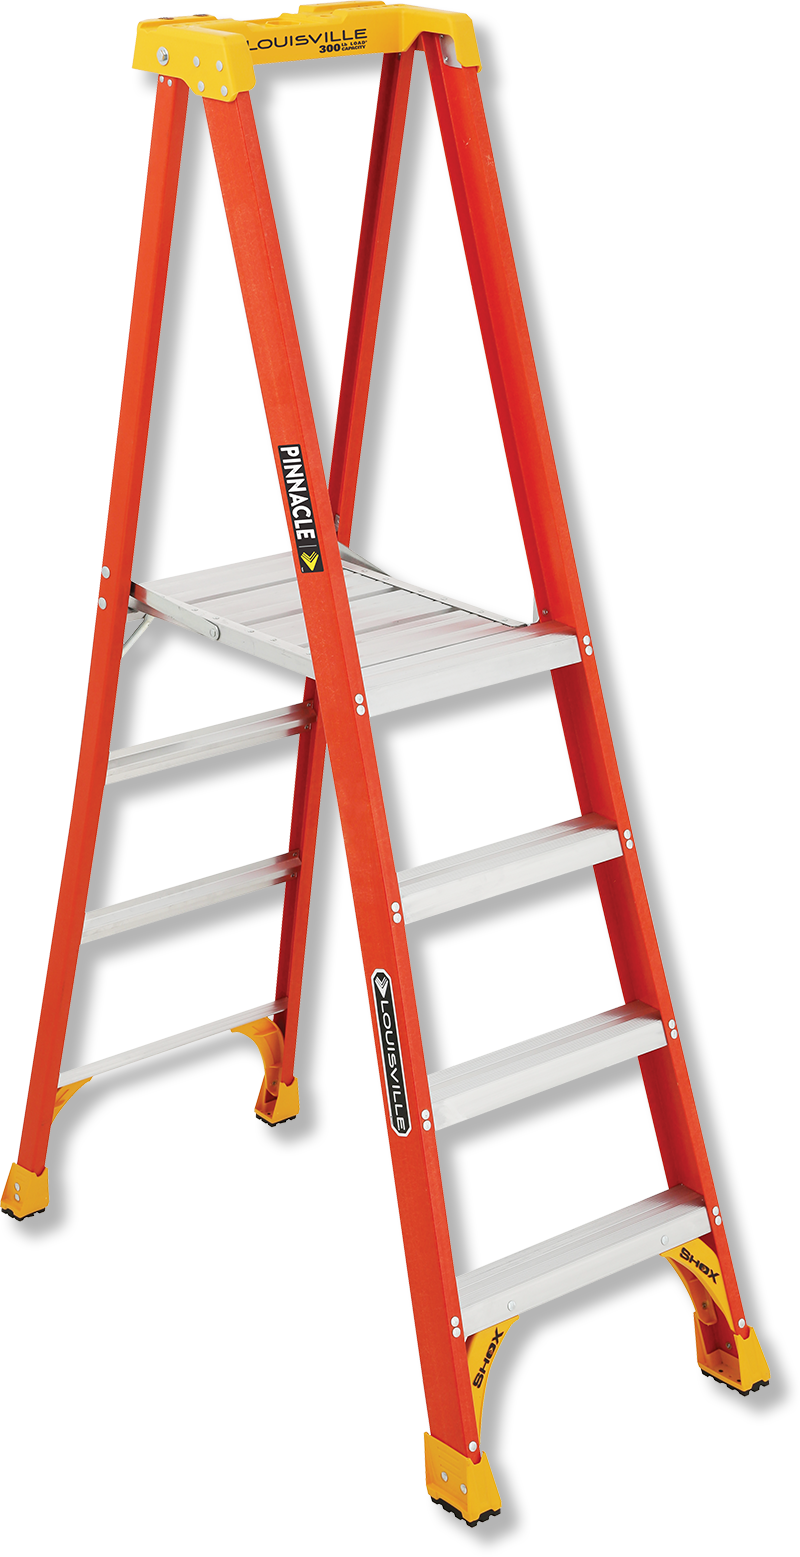 High Performance Ladders | Louisville Ladder